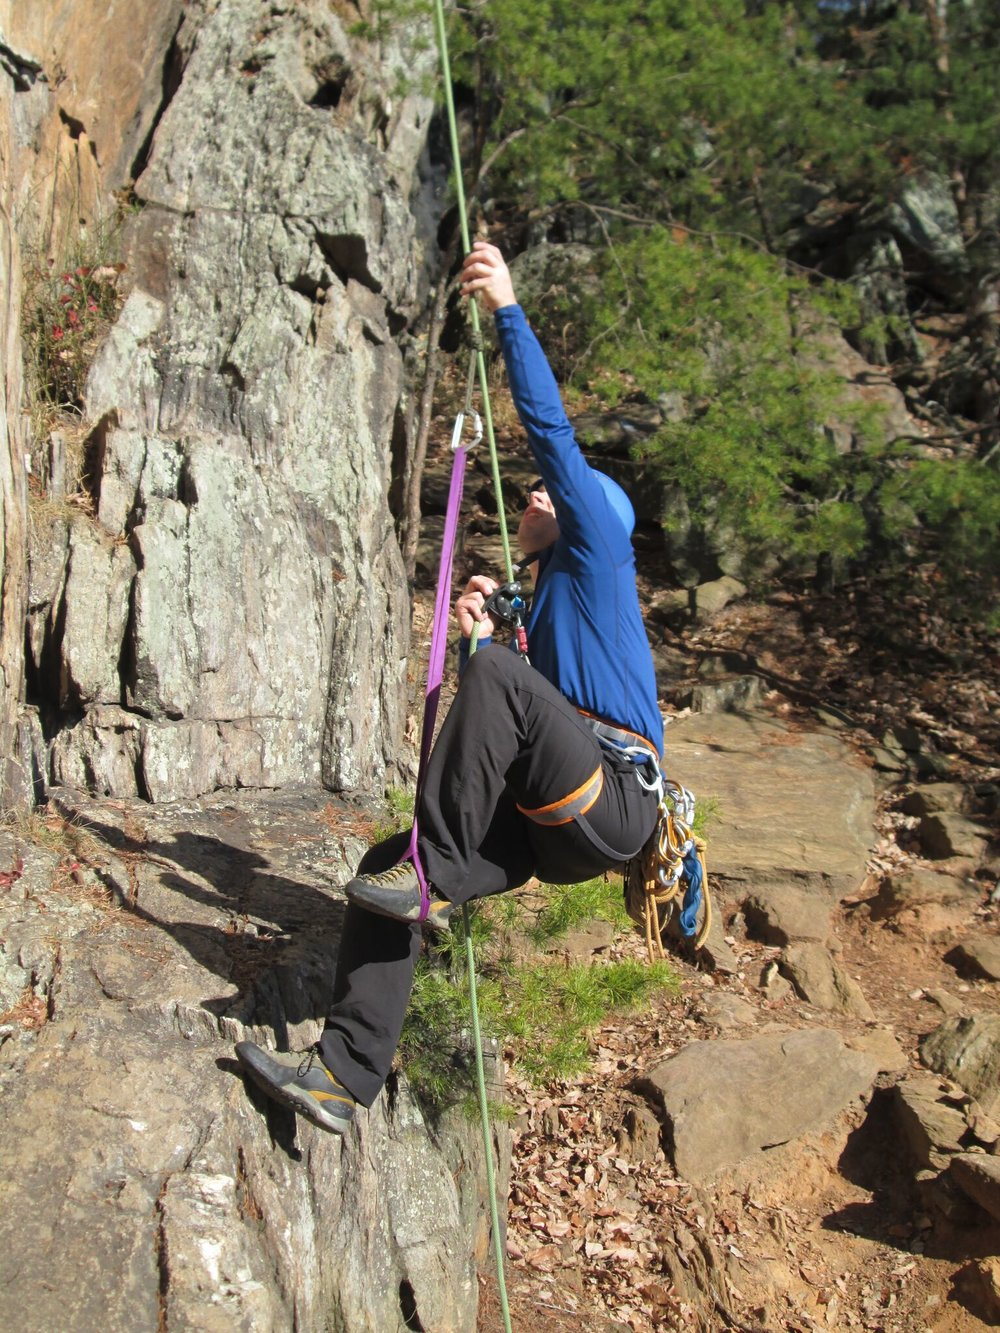 Many climbing instructors, like this one, learn to use an ABD for rope ascension.  As an improvised progress capture, these tools can be effective.